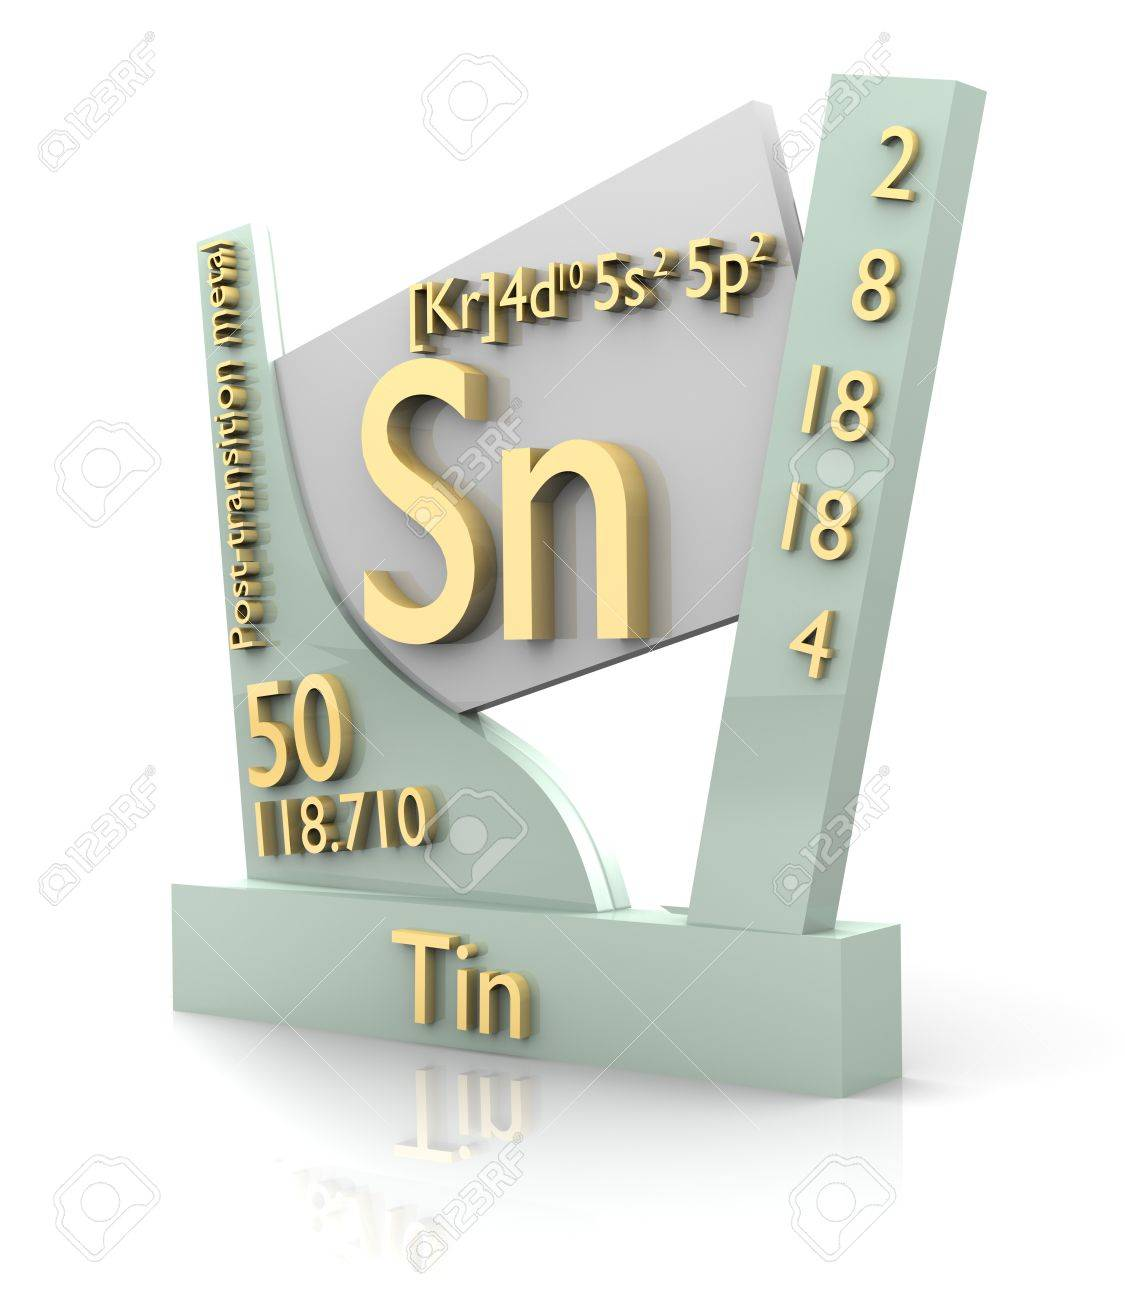 Tin on periodic table choice image periodic table images picture suggestion for tin periodic table these are some of the images that we found within gamestrikefo Gallery